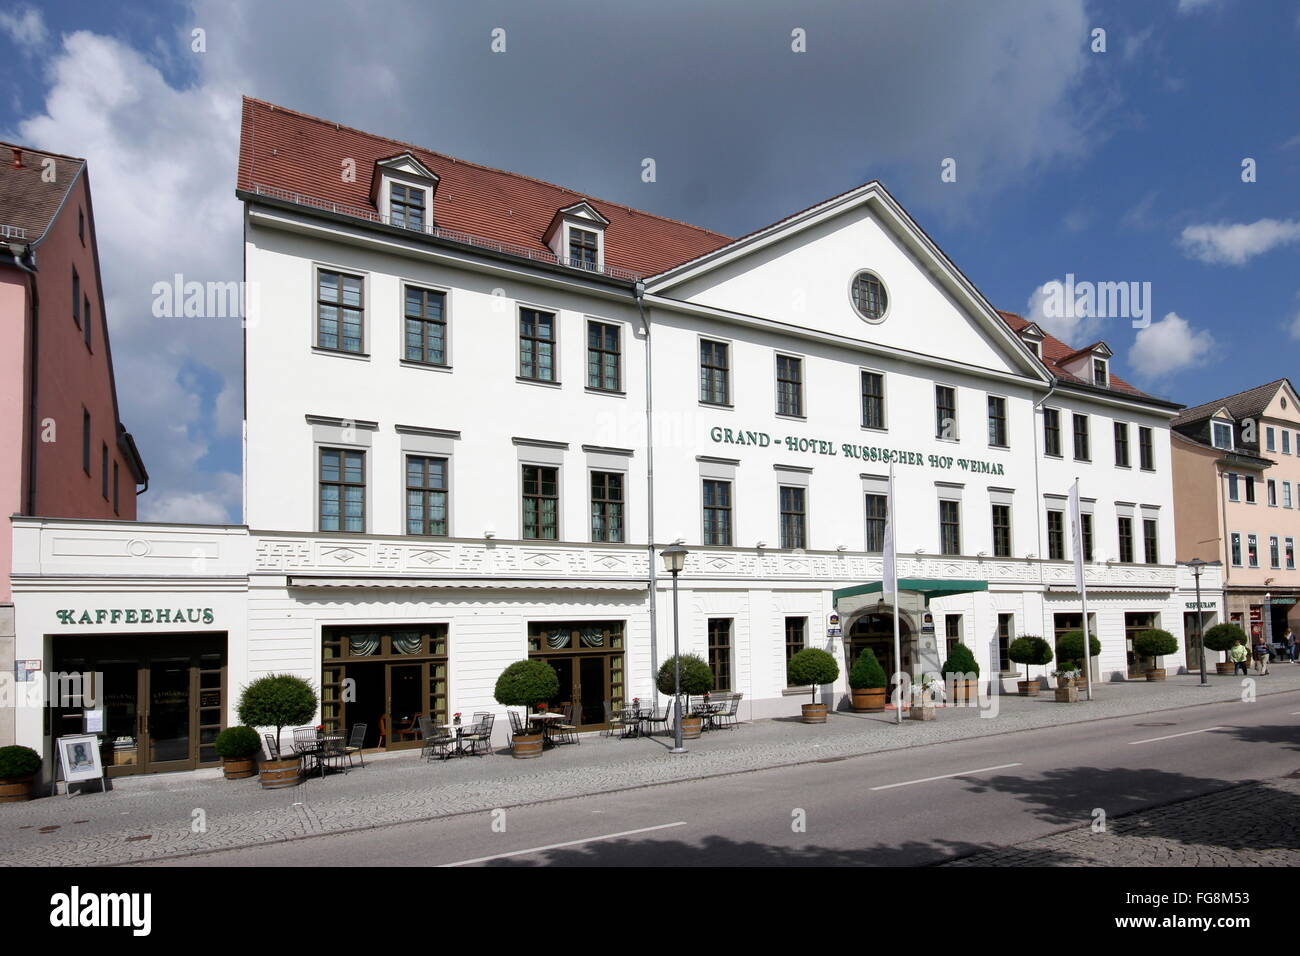 geography / travel, Germany, Thuringia, Weimar, hotel 'Russischer Hof', Additional-Rights-Clearance-Info - Stock Image